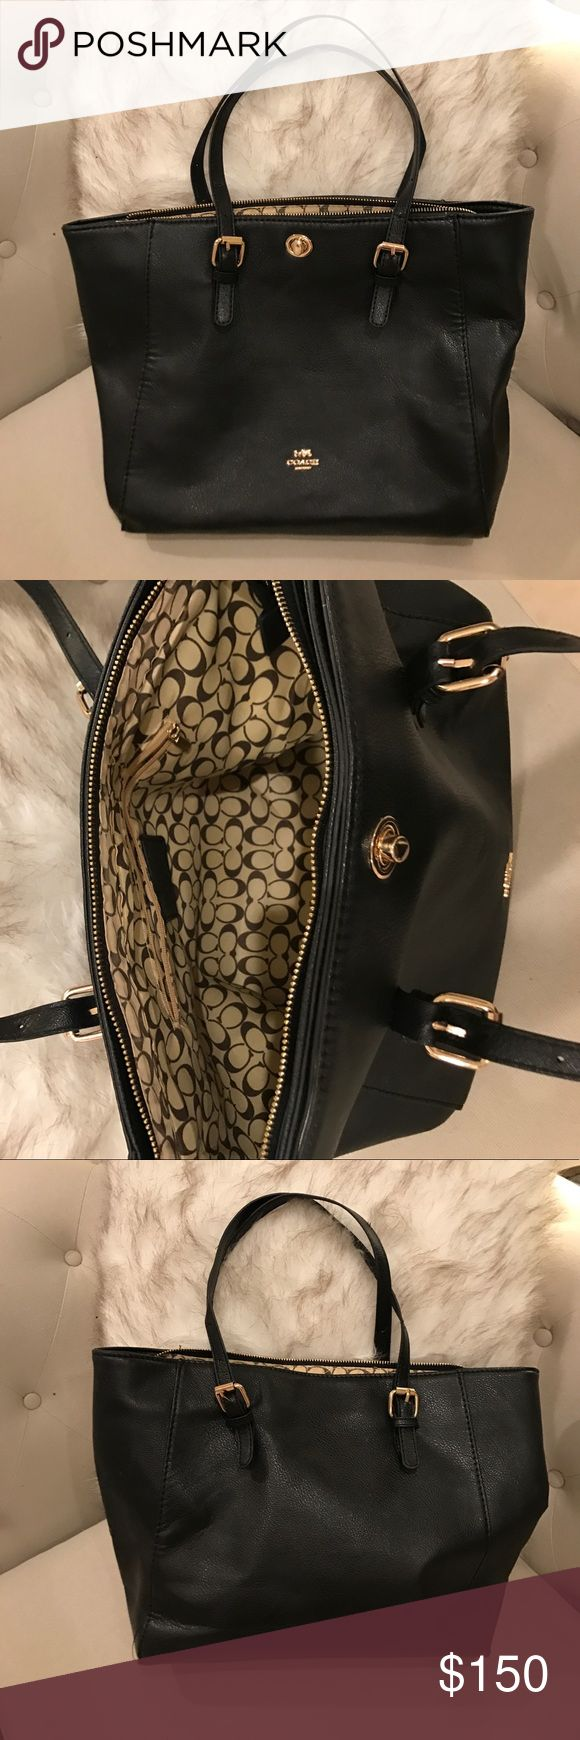 Black coach tote Beautiful and comfortable black coach tote. Never worn❣️perfect condition 👍 Coach Bags Totes